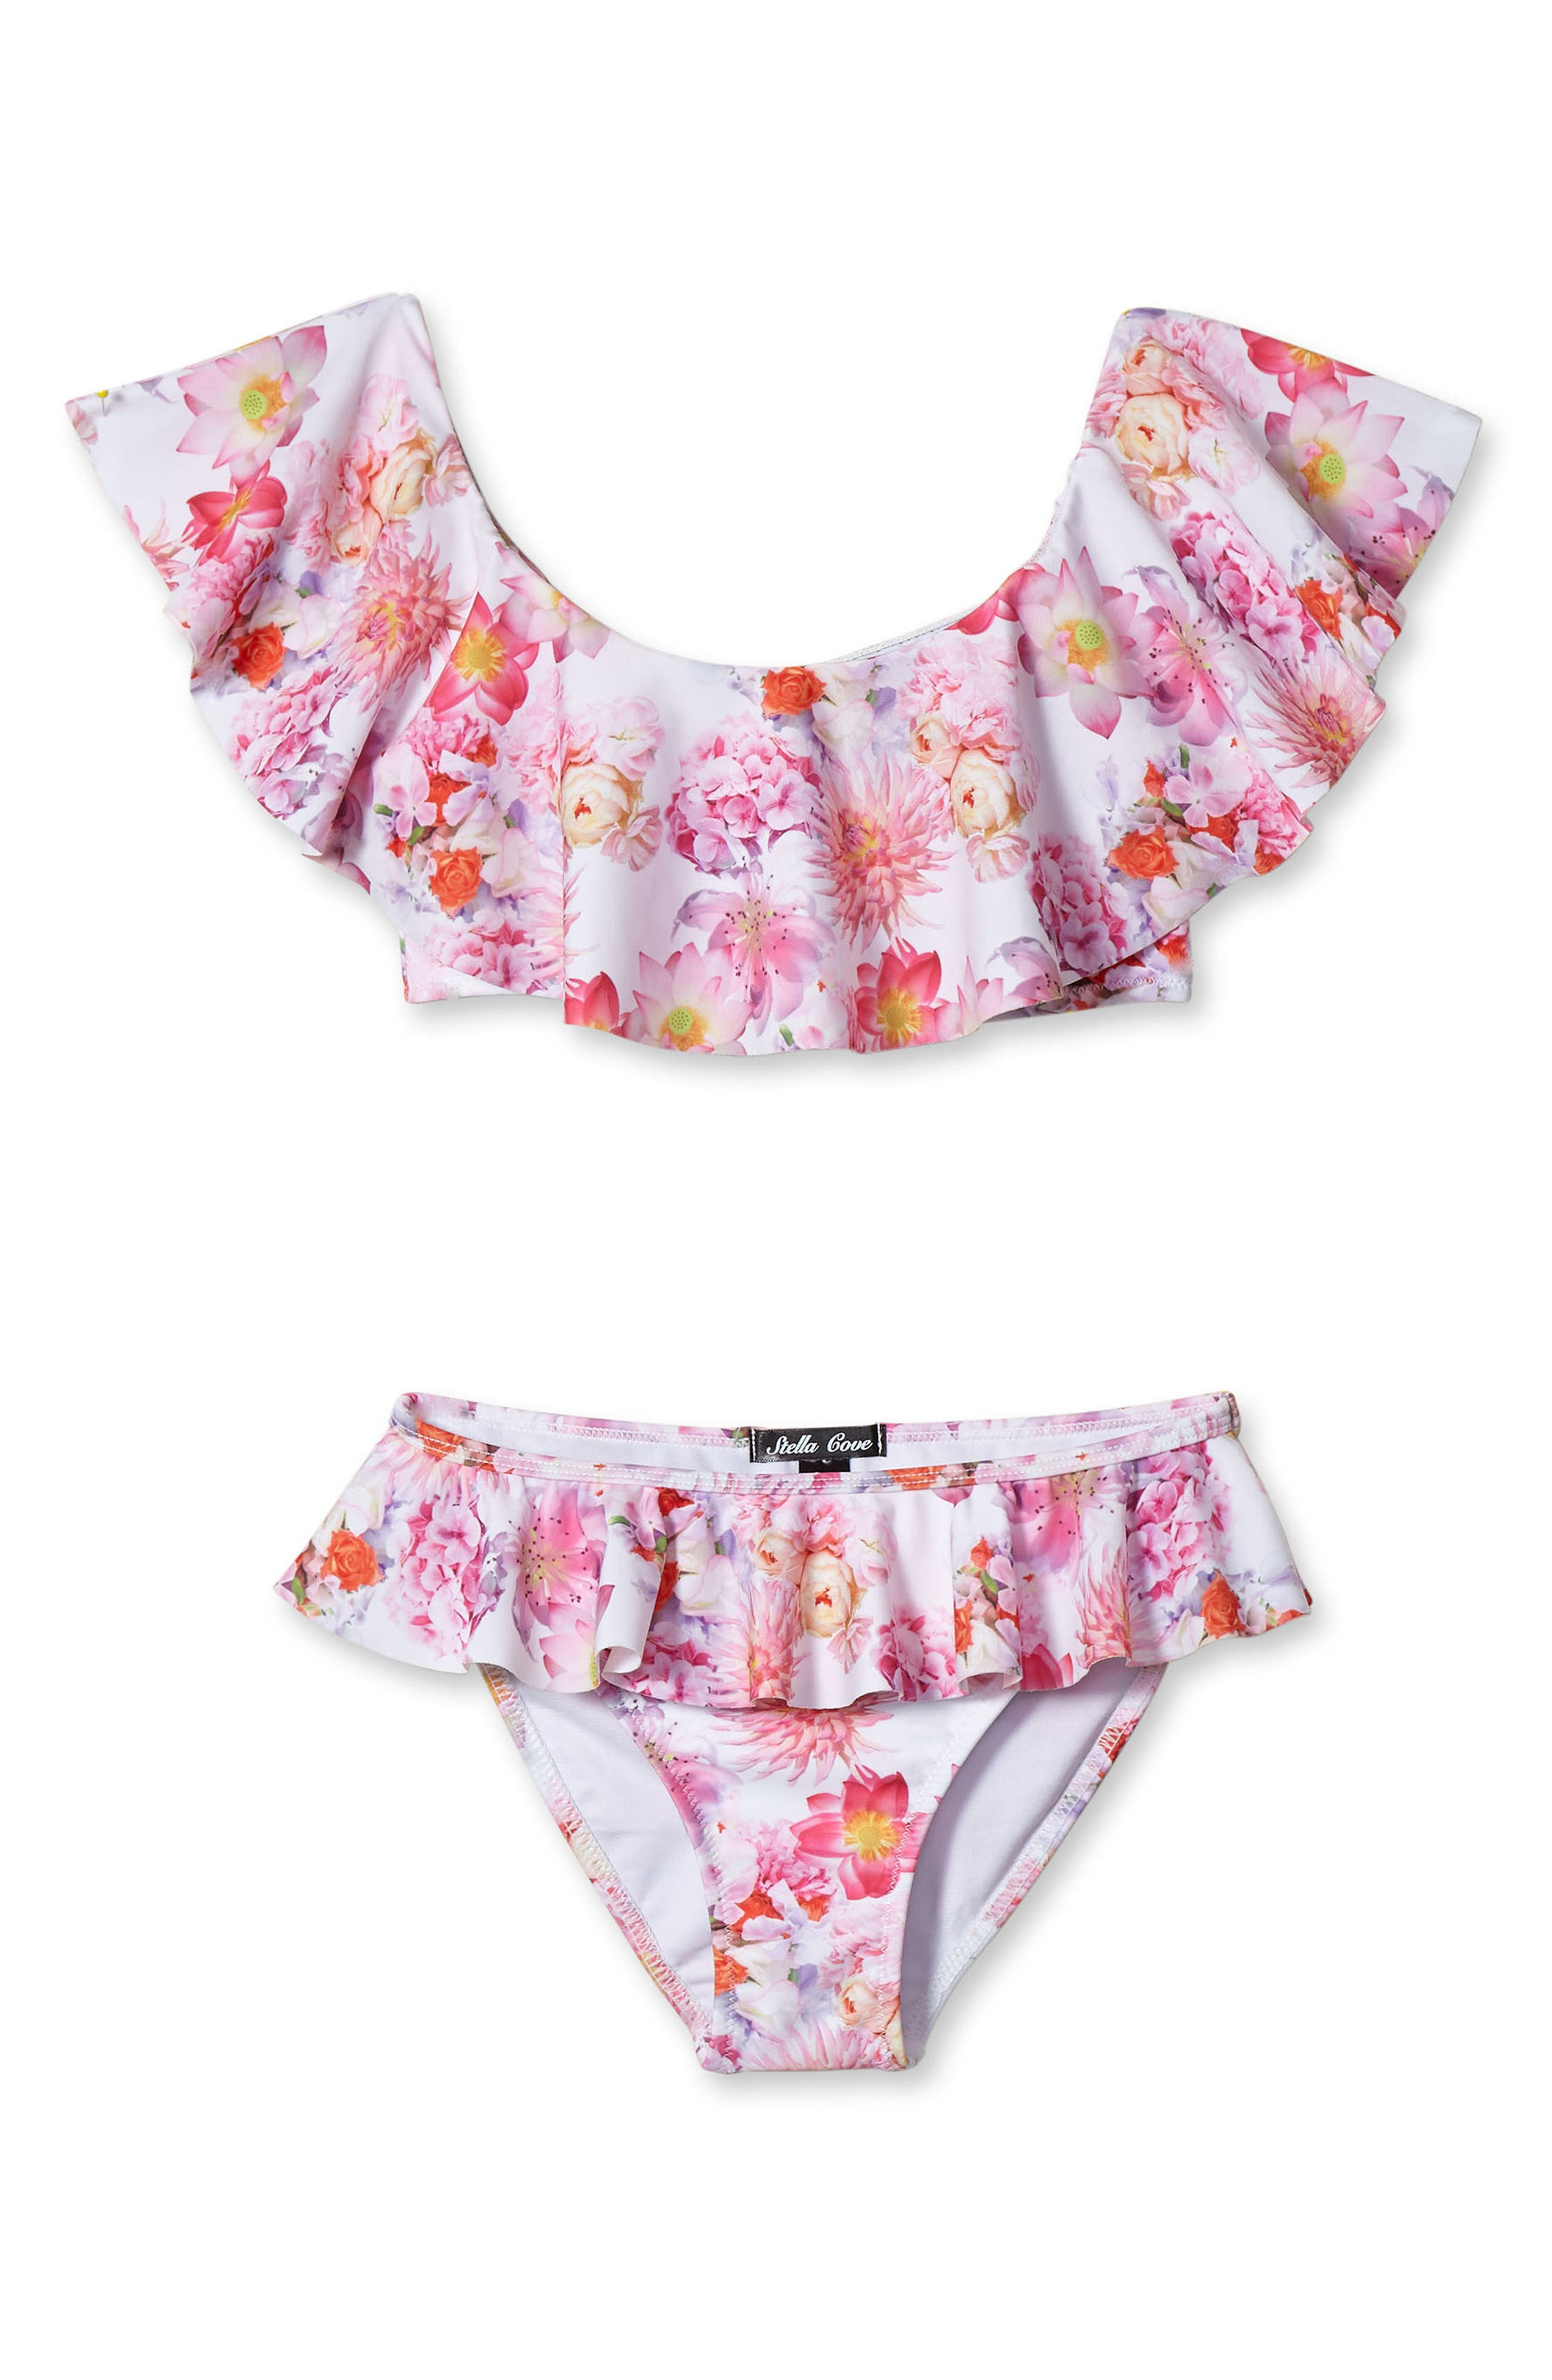 f764a1b700 Girl's Stella Cove Floral Print Ruffle Two-Piece Swimsuit, Pink